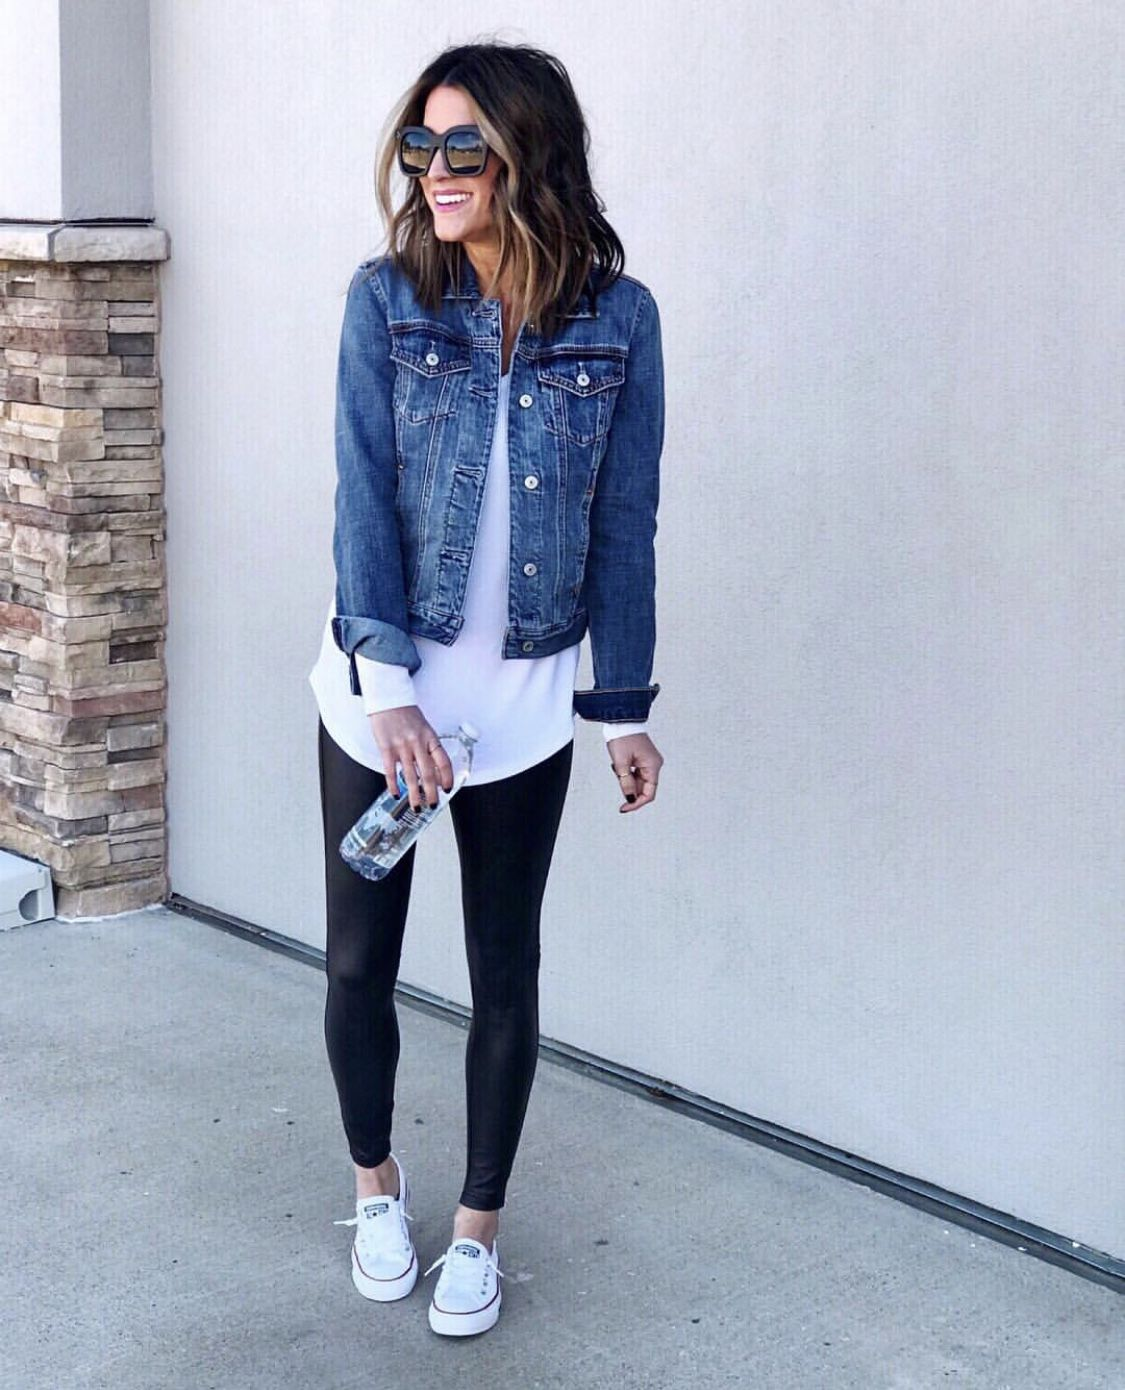 30 Ways To Style A Denim Jacket The Sister Studio Outfits With Leggings Camping Outfits For Women Denim Fashion [ 1390 x 1125 Pixel ]